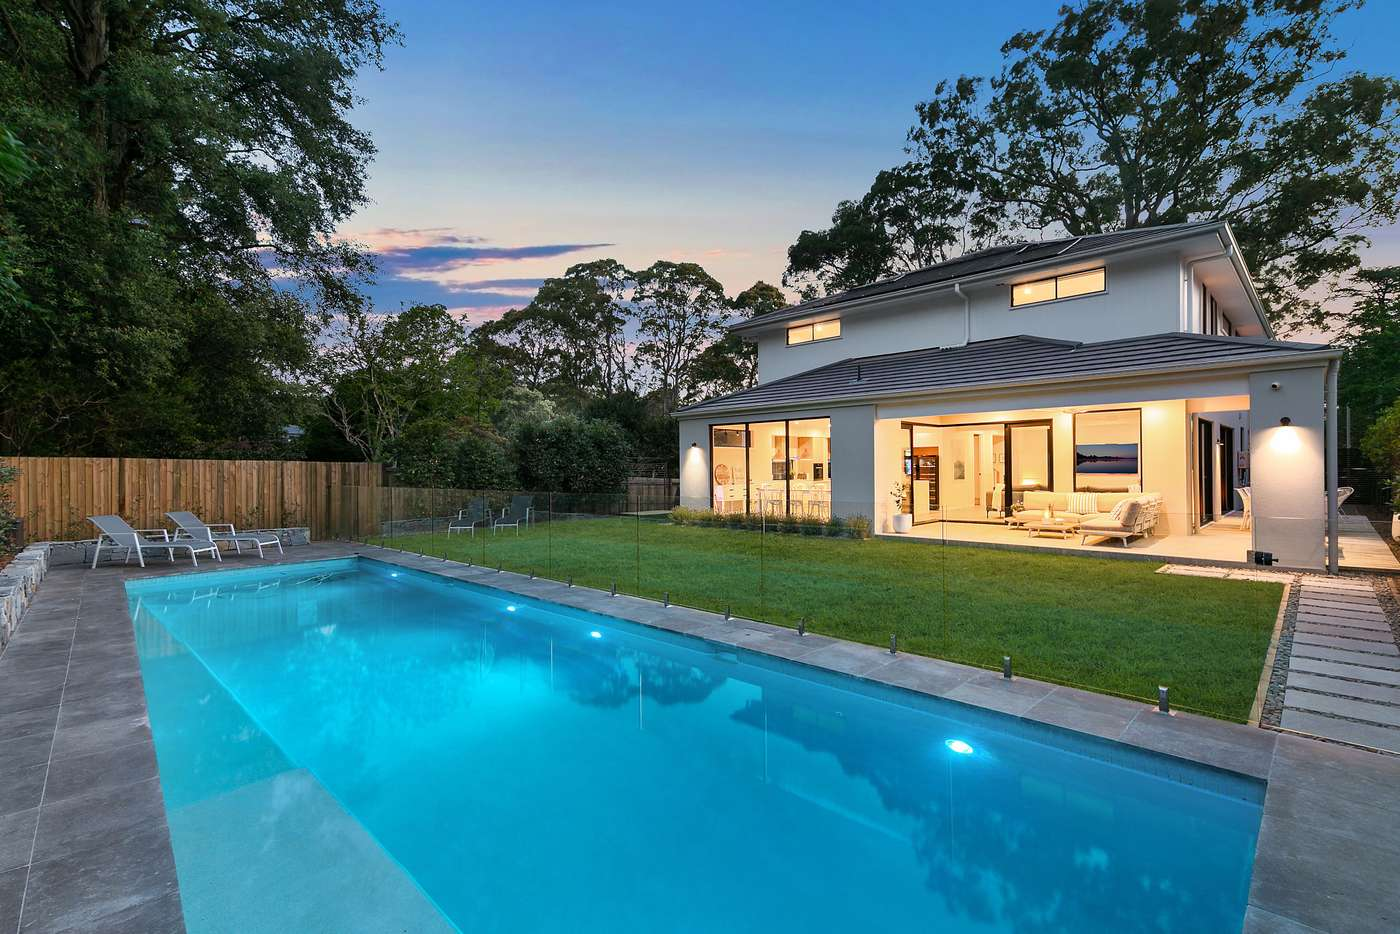 Main view of Homely house listing, 19 Cynthia Street, Pymble NSW 2073